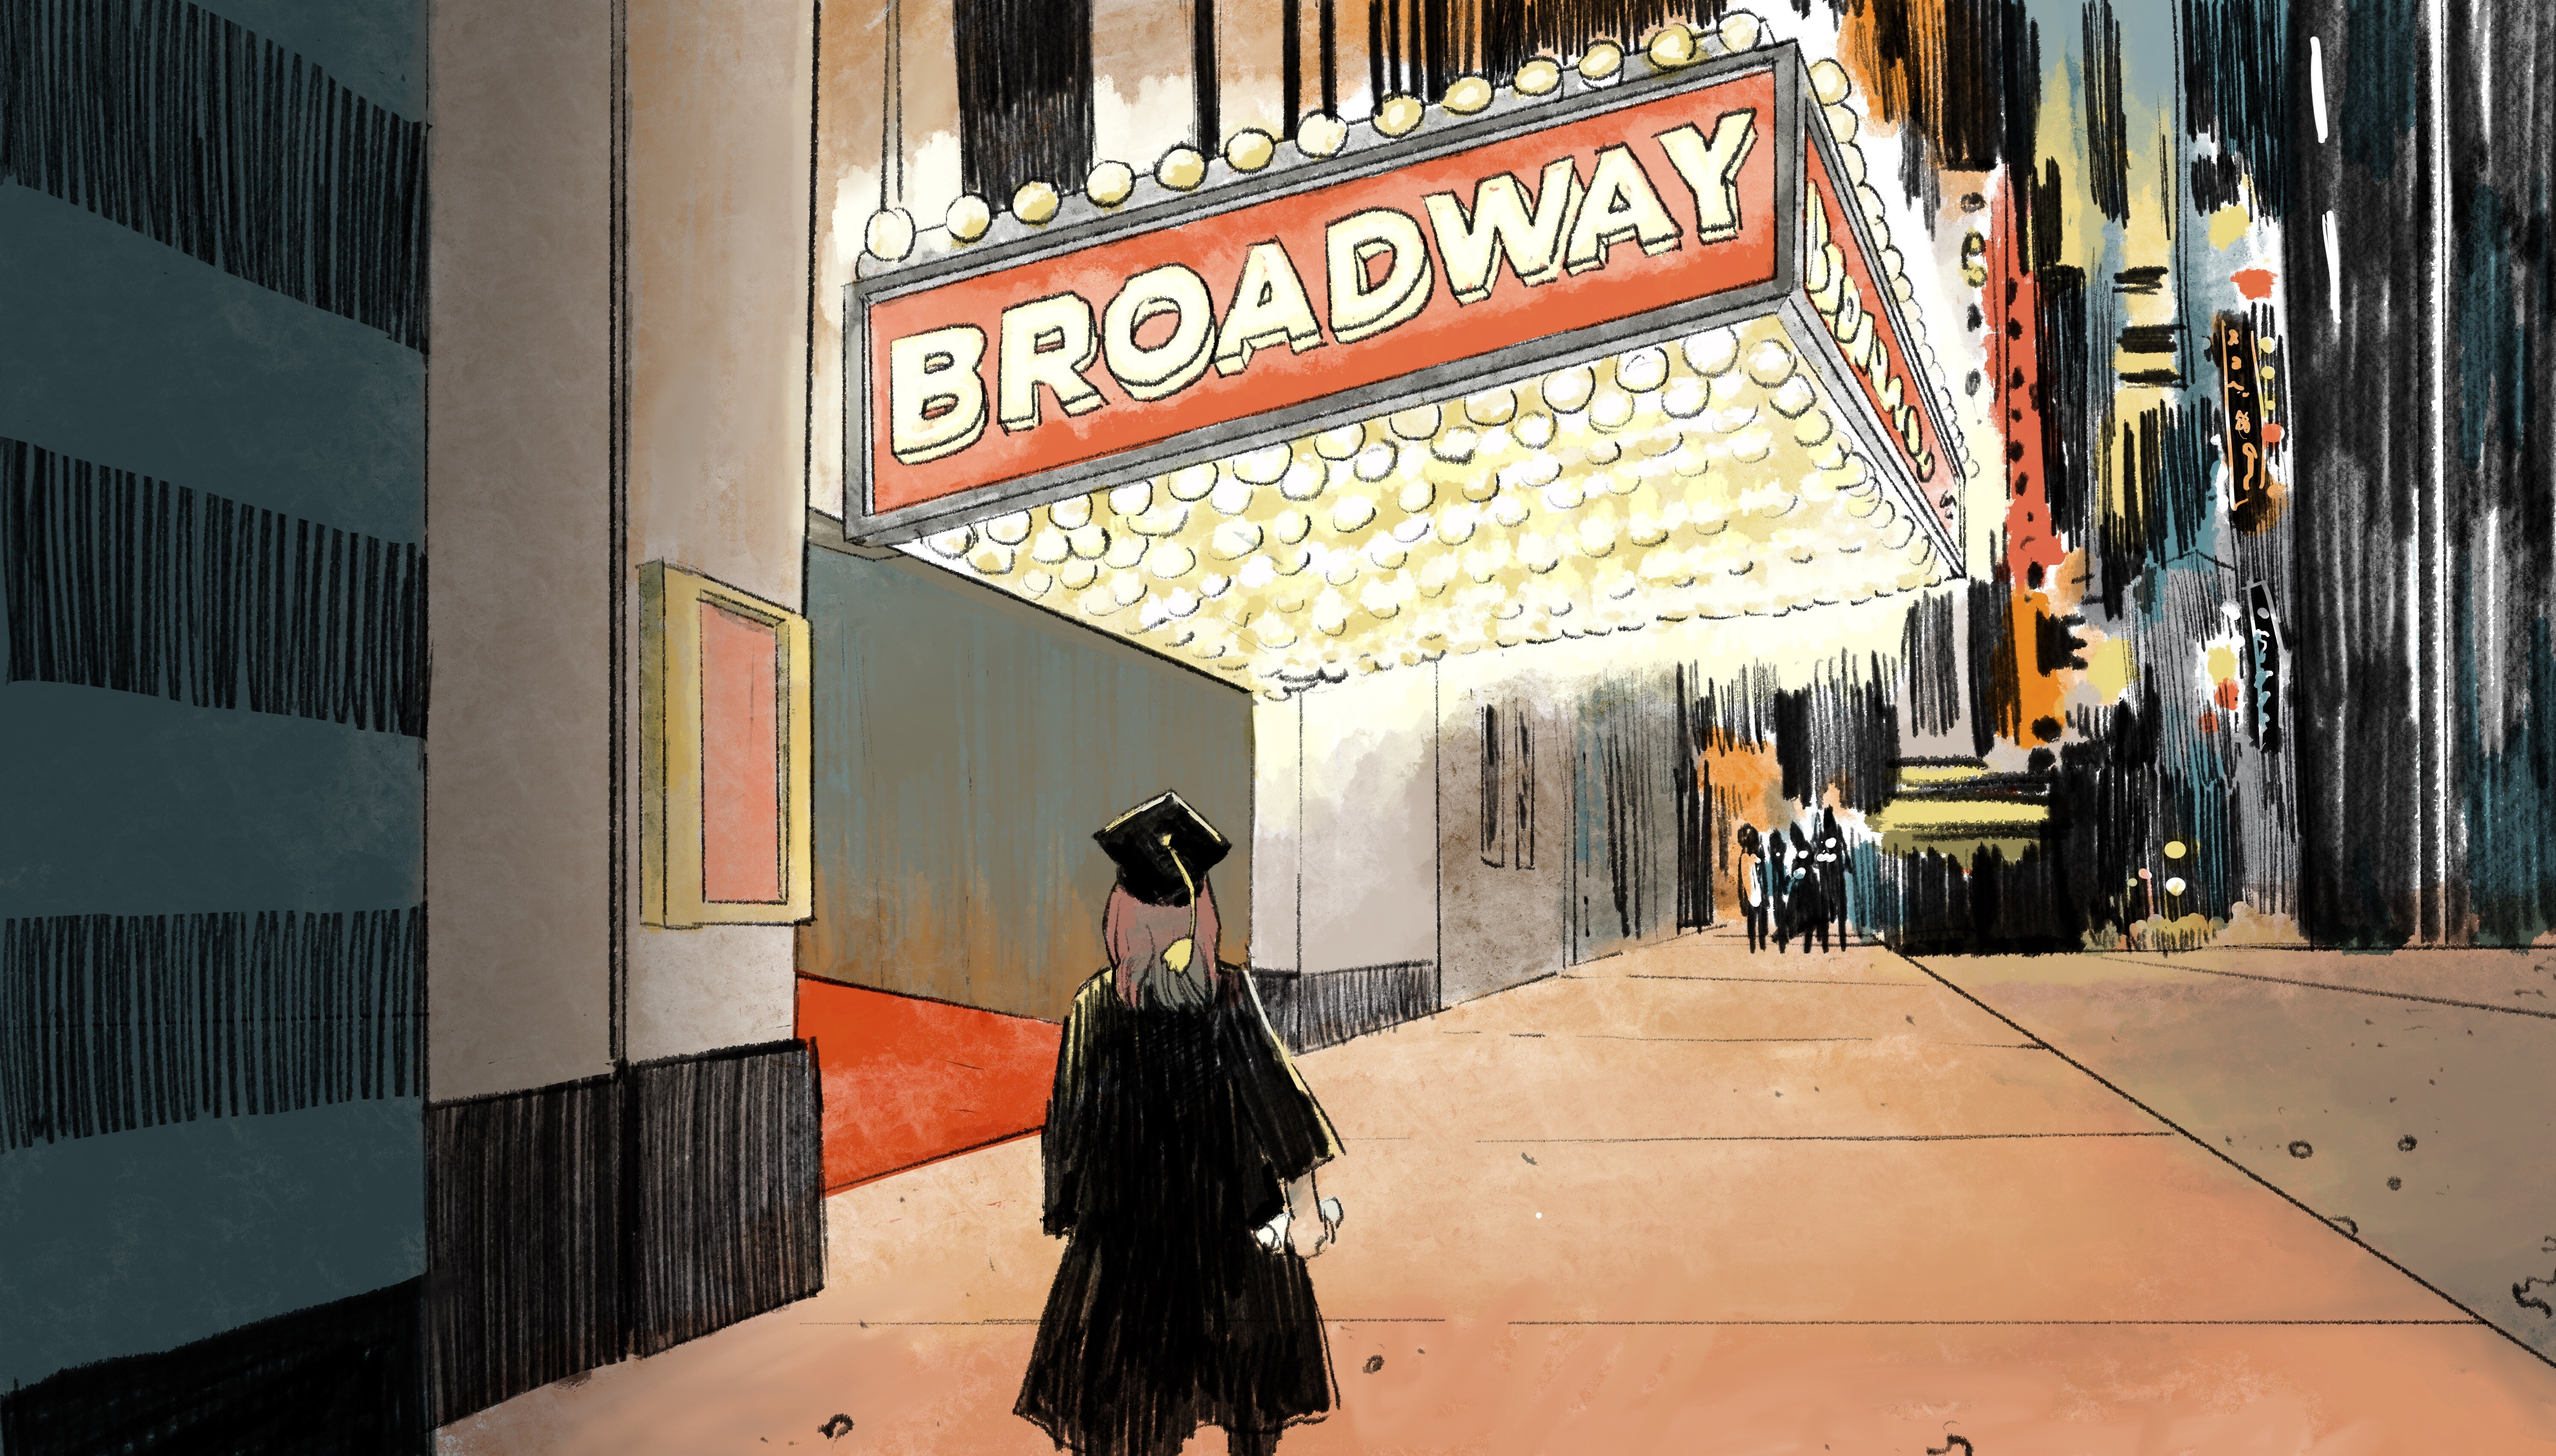 10 College Musical Theater Programs You Should Know